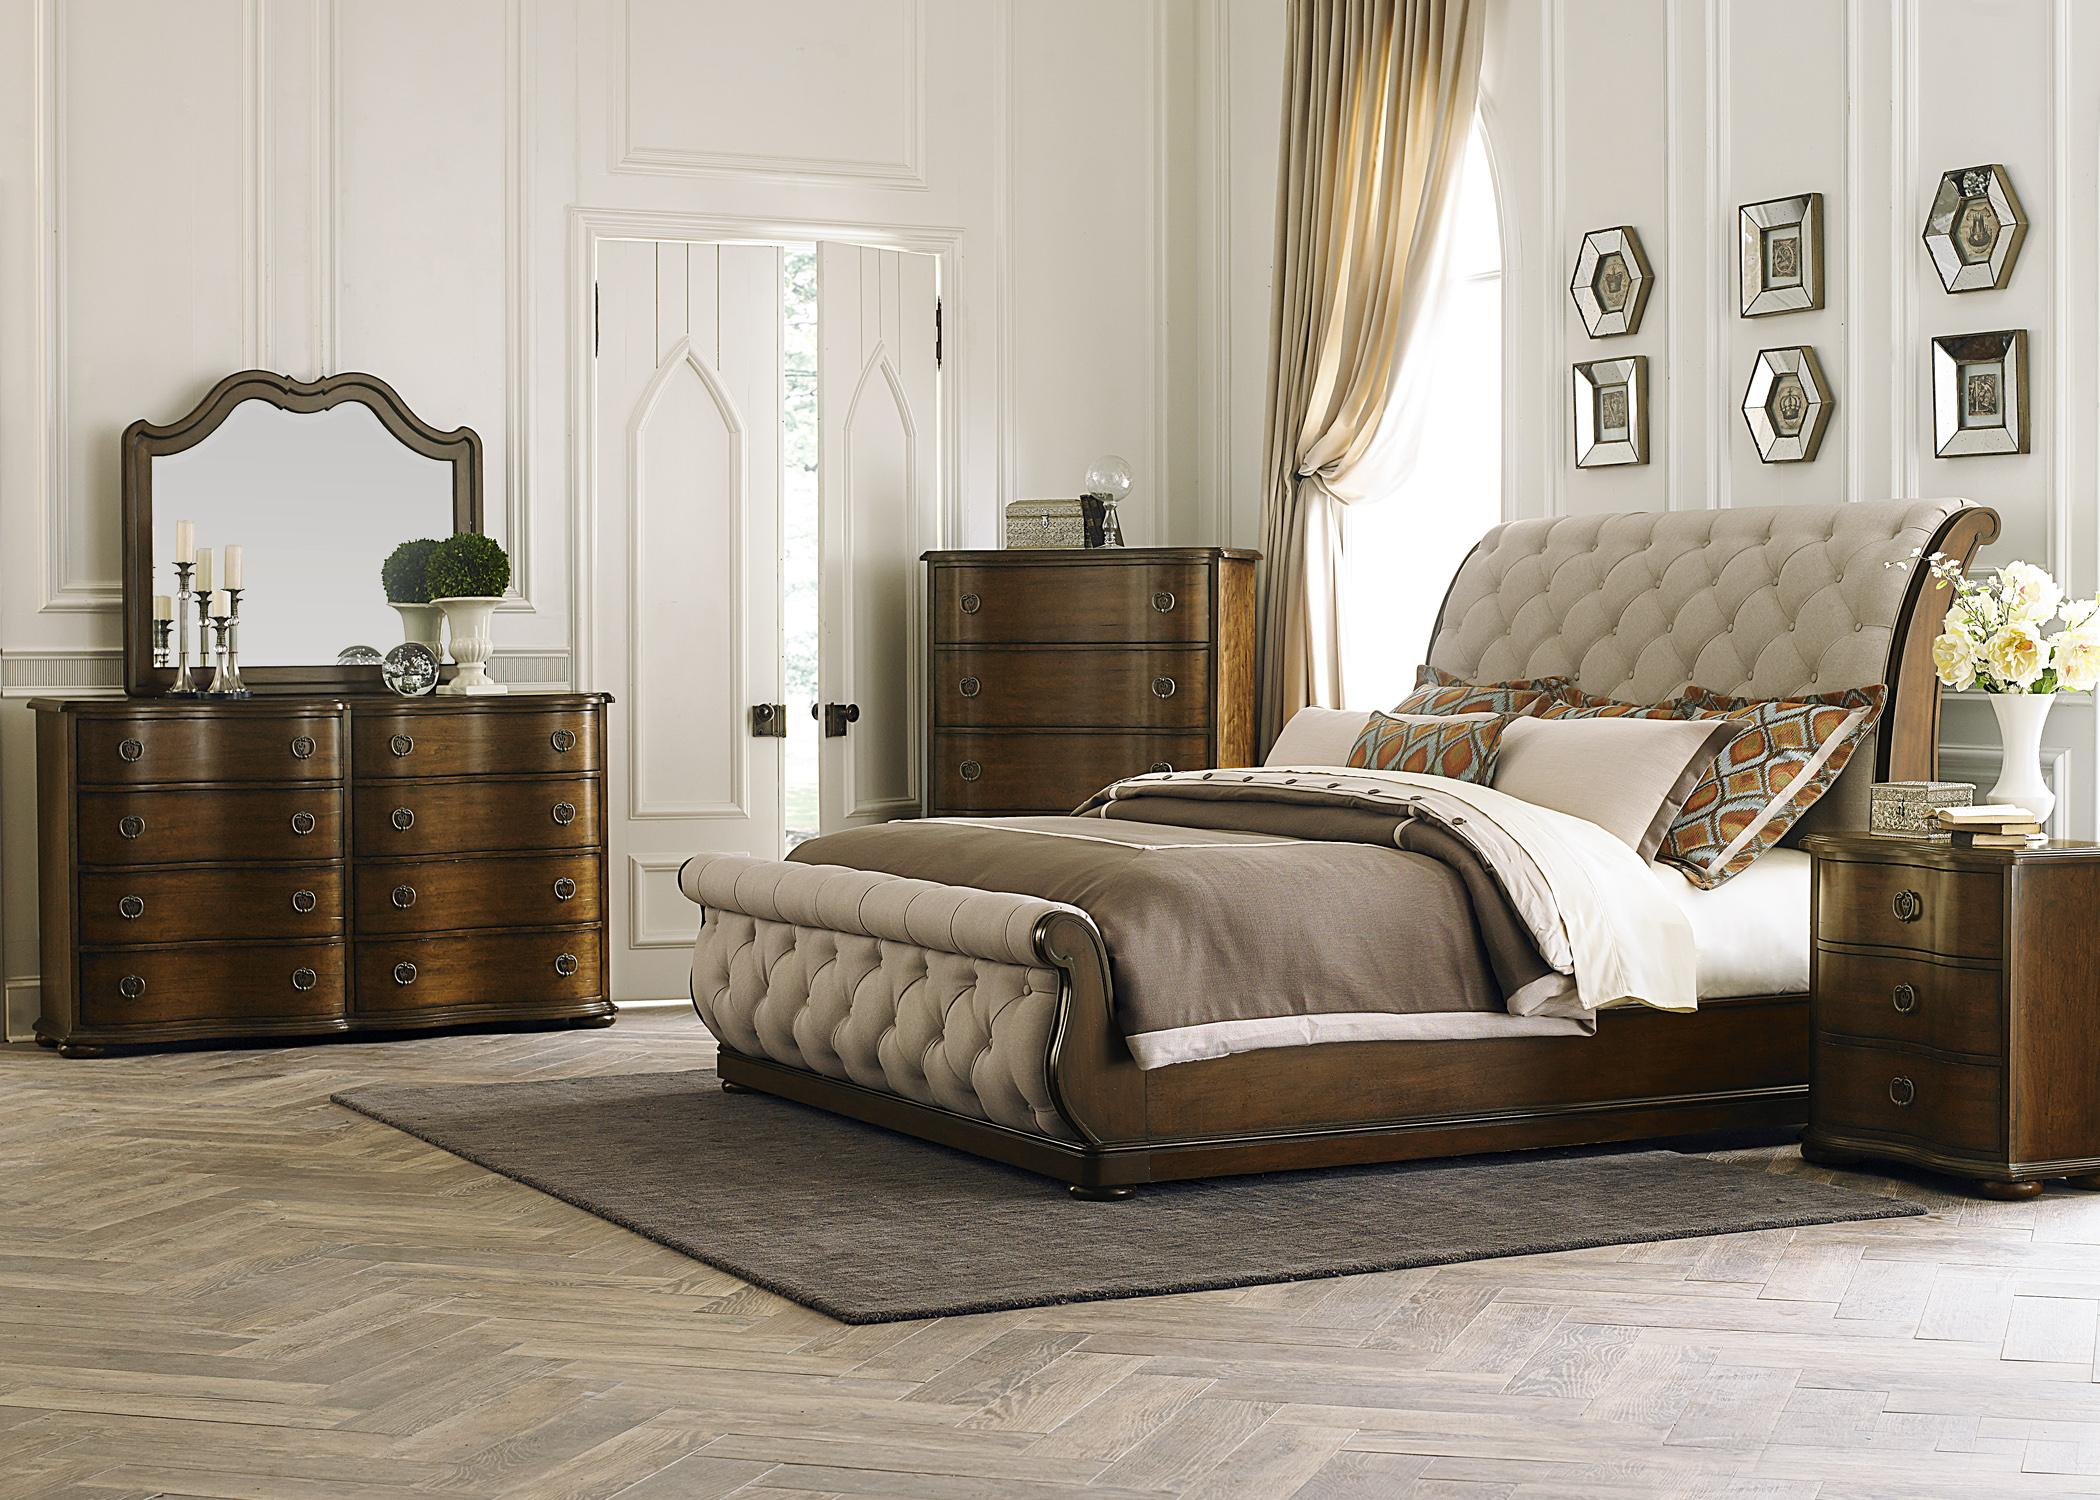 Cotswold  Queen Bedroom Group by Sarah Randolph Designs at Virginia Furniture Market